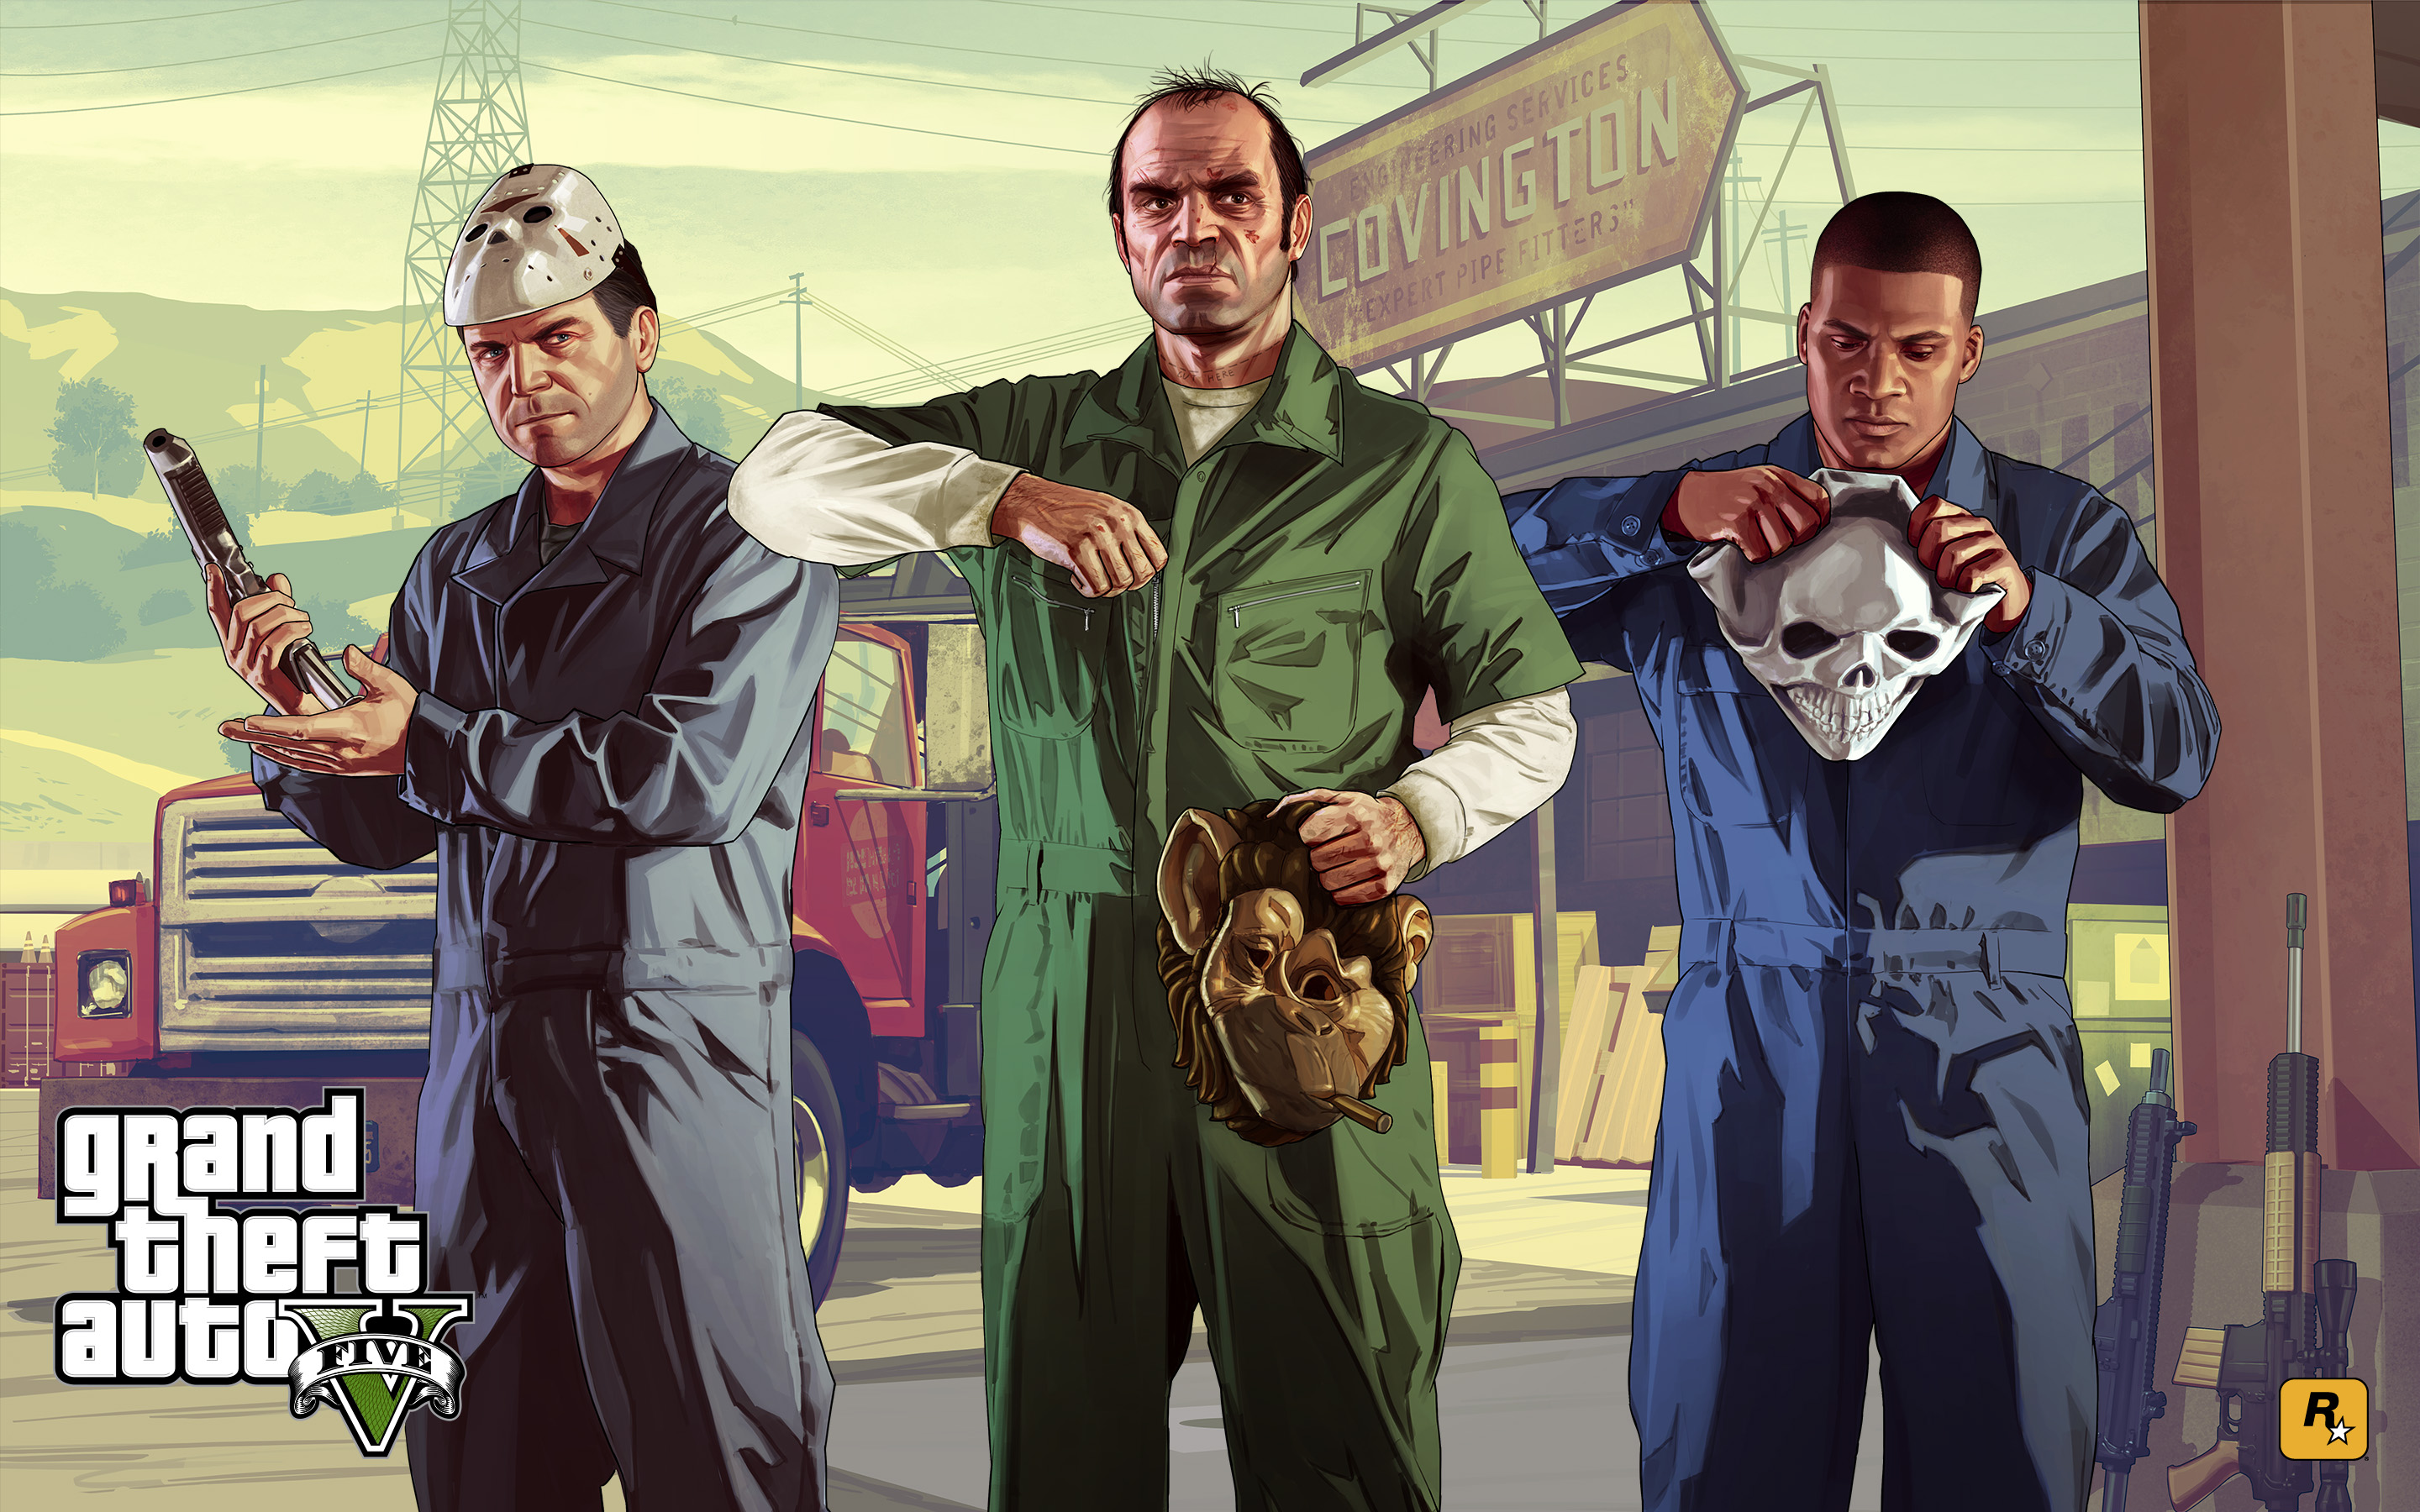 Gta v blitzplay hd games 4k wallpapers images - Gta v wallpaper ...